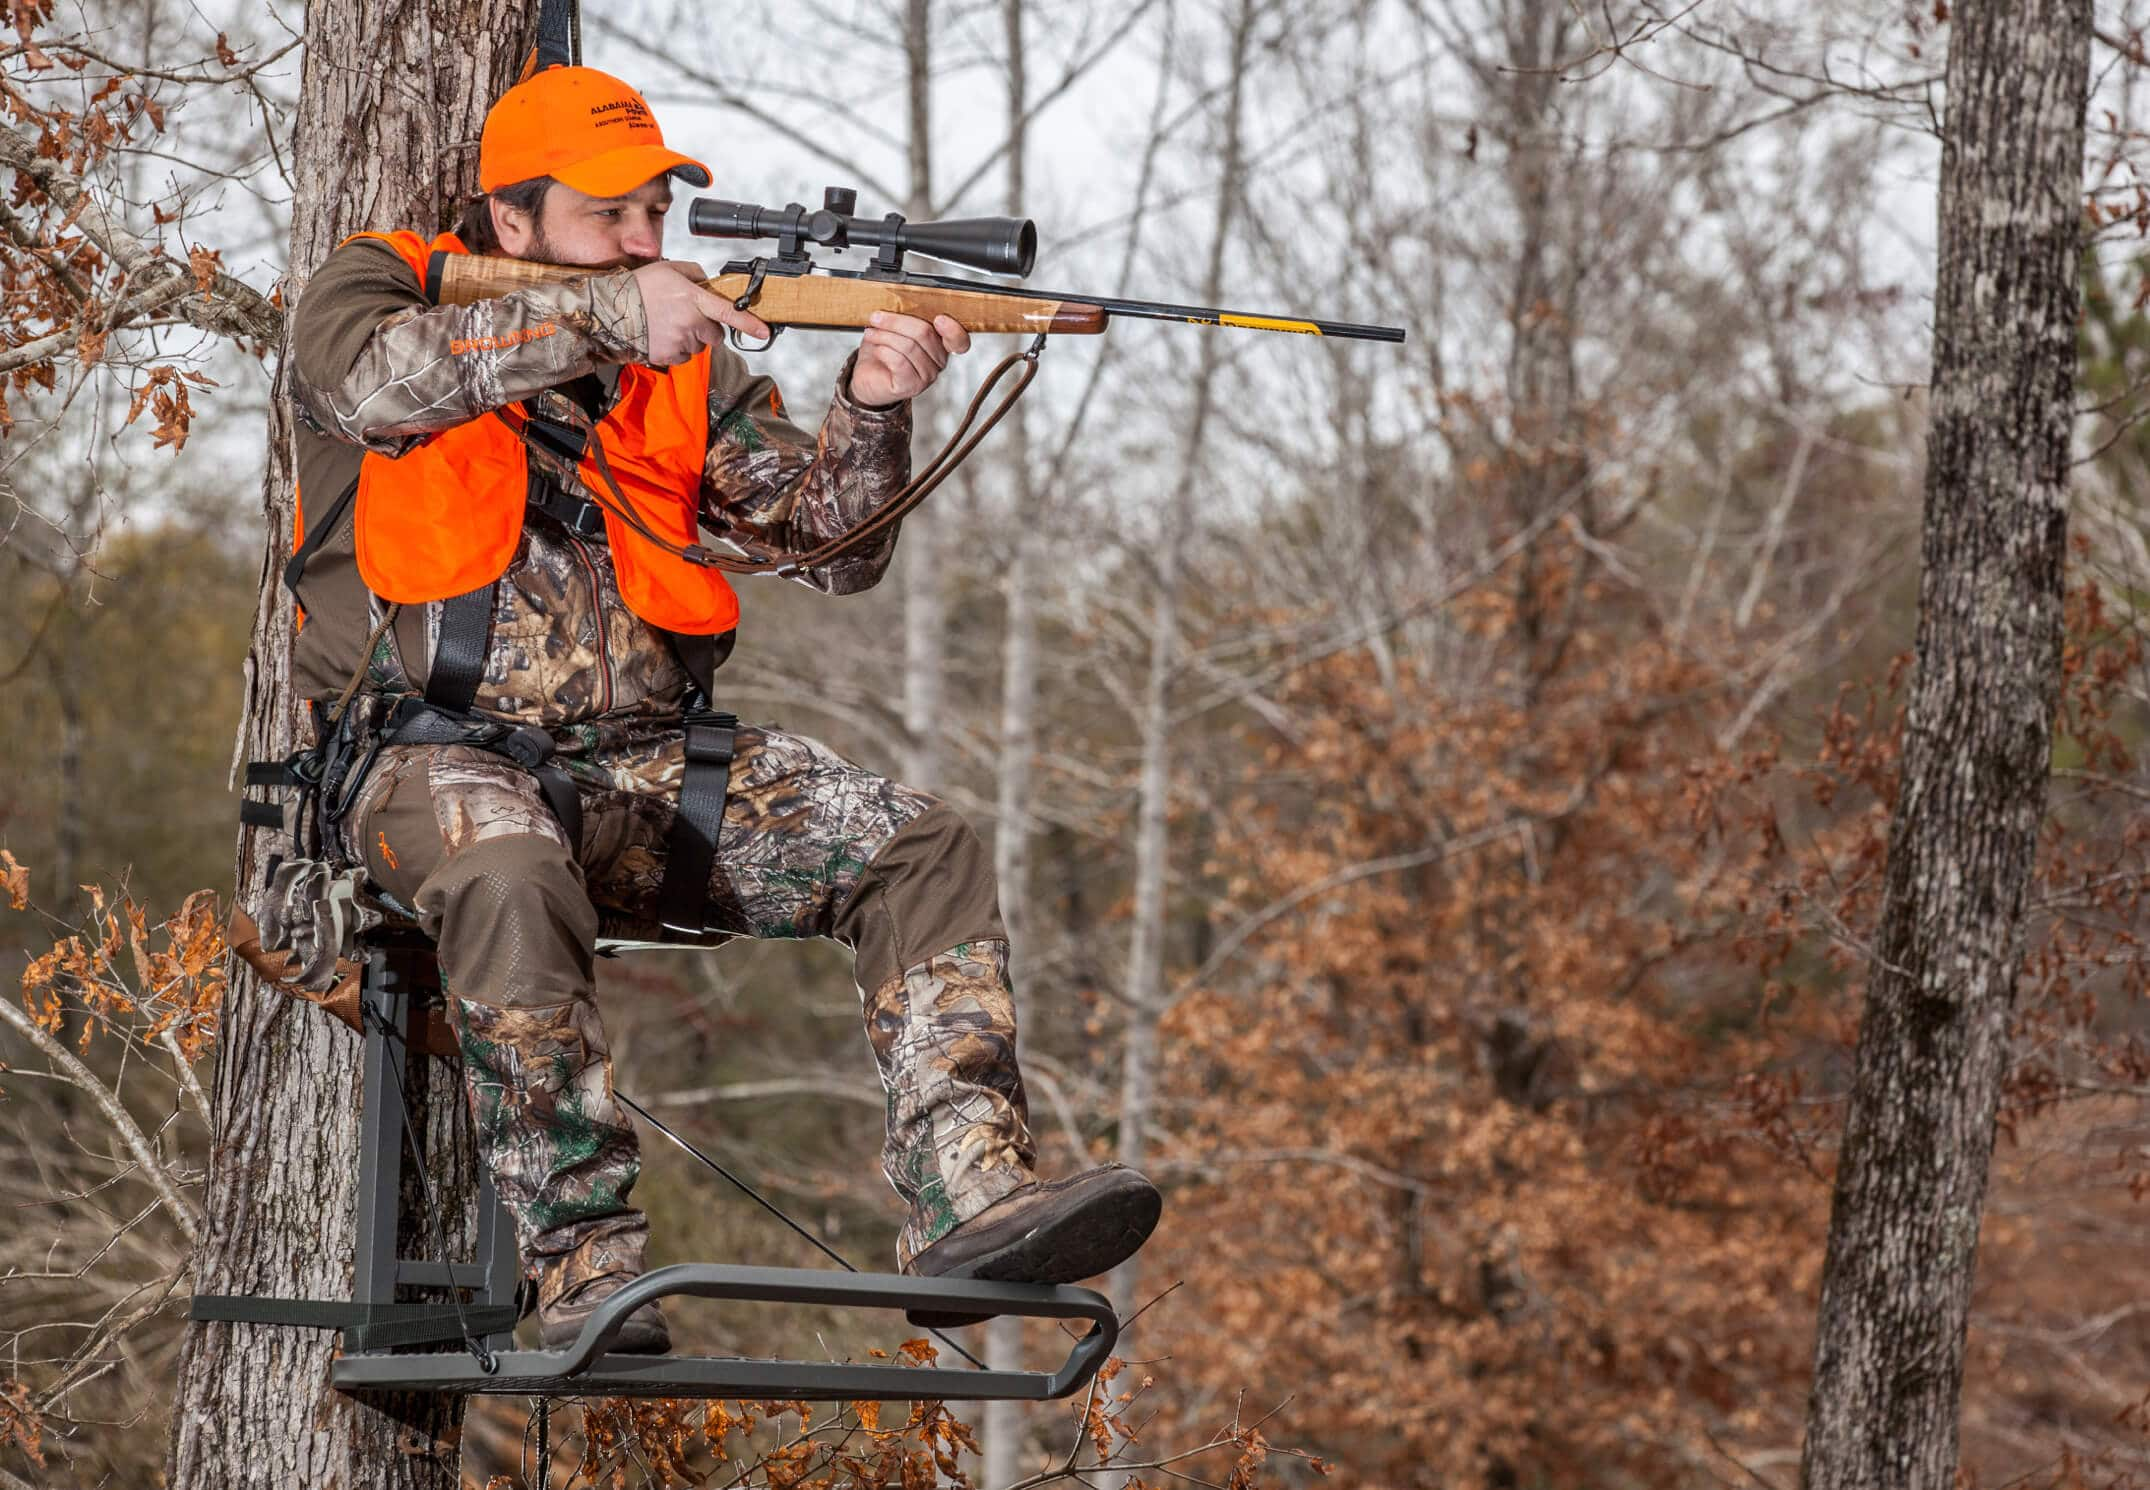 Man dressed in camo in a tree stand aiming his gun